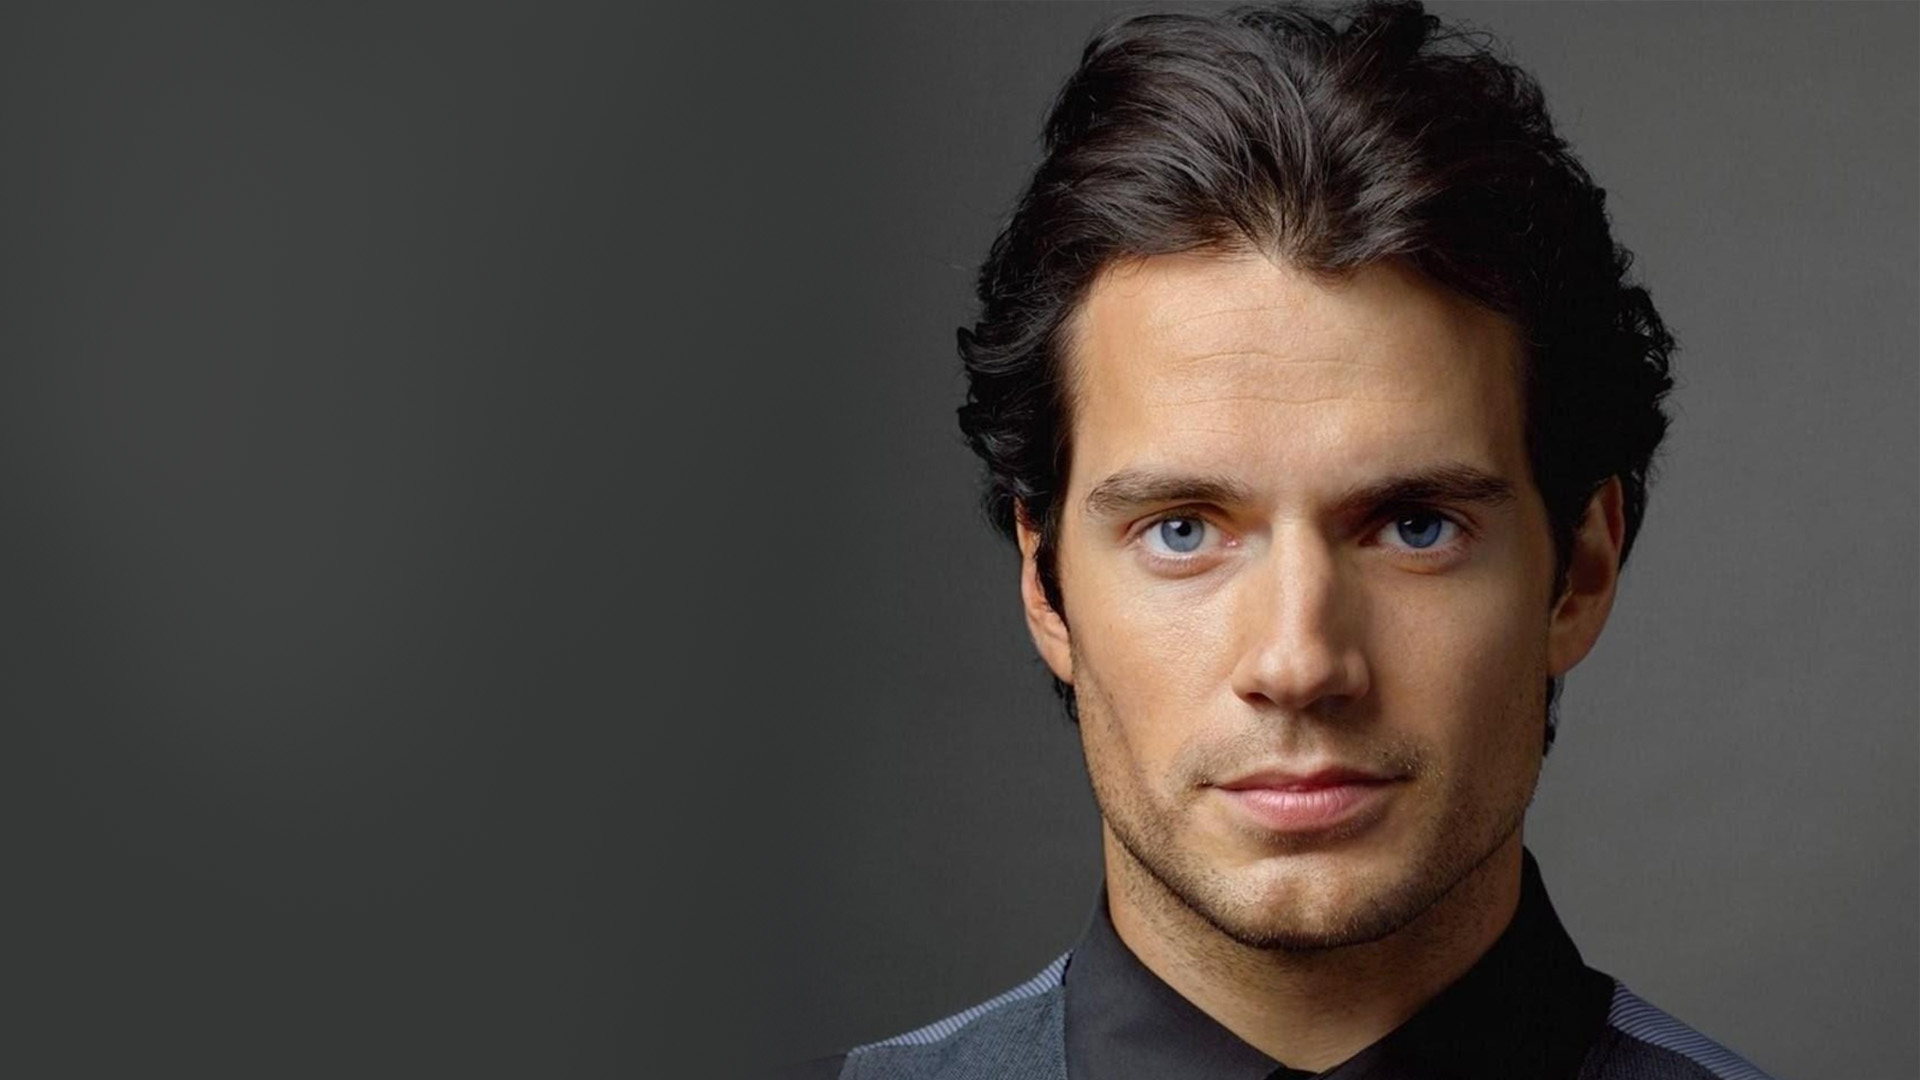 henry-cavill-face-wallpaper-52405-54117-hd-wallpapers